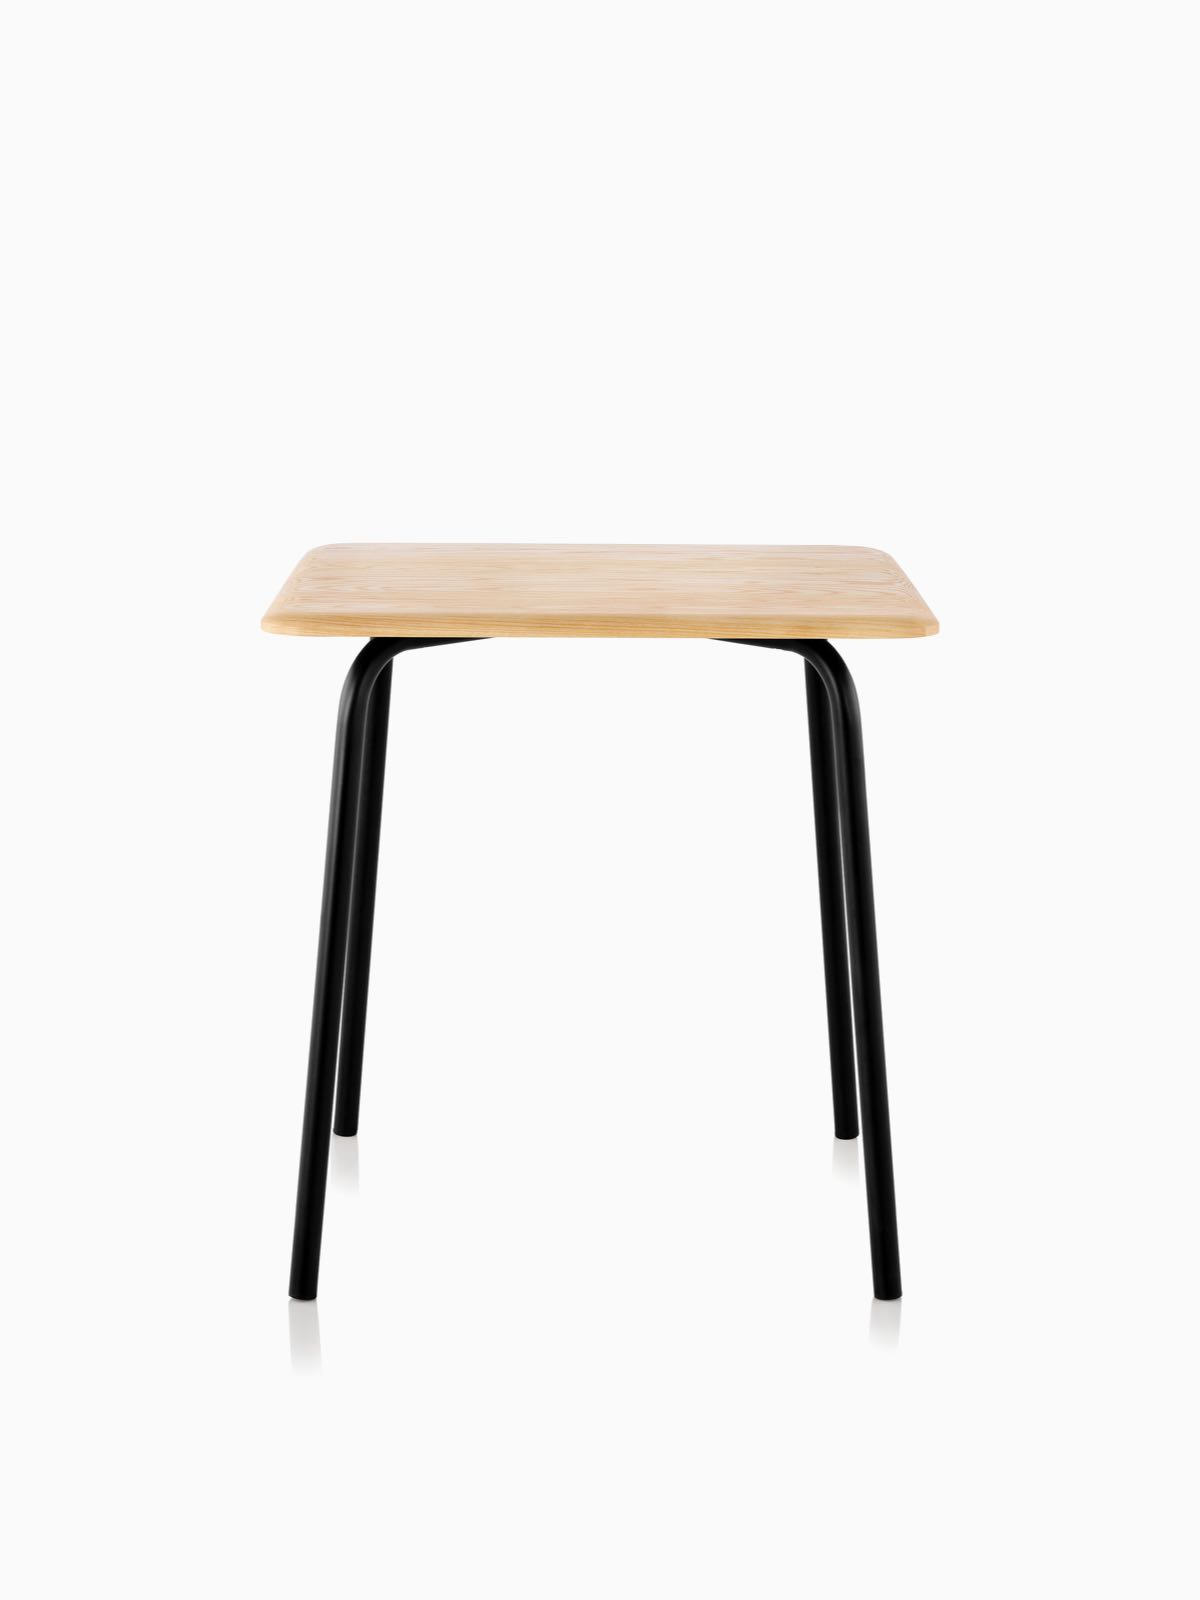 Mattiazzi Forcina Tables